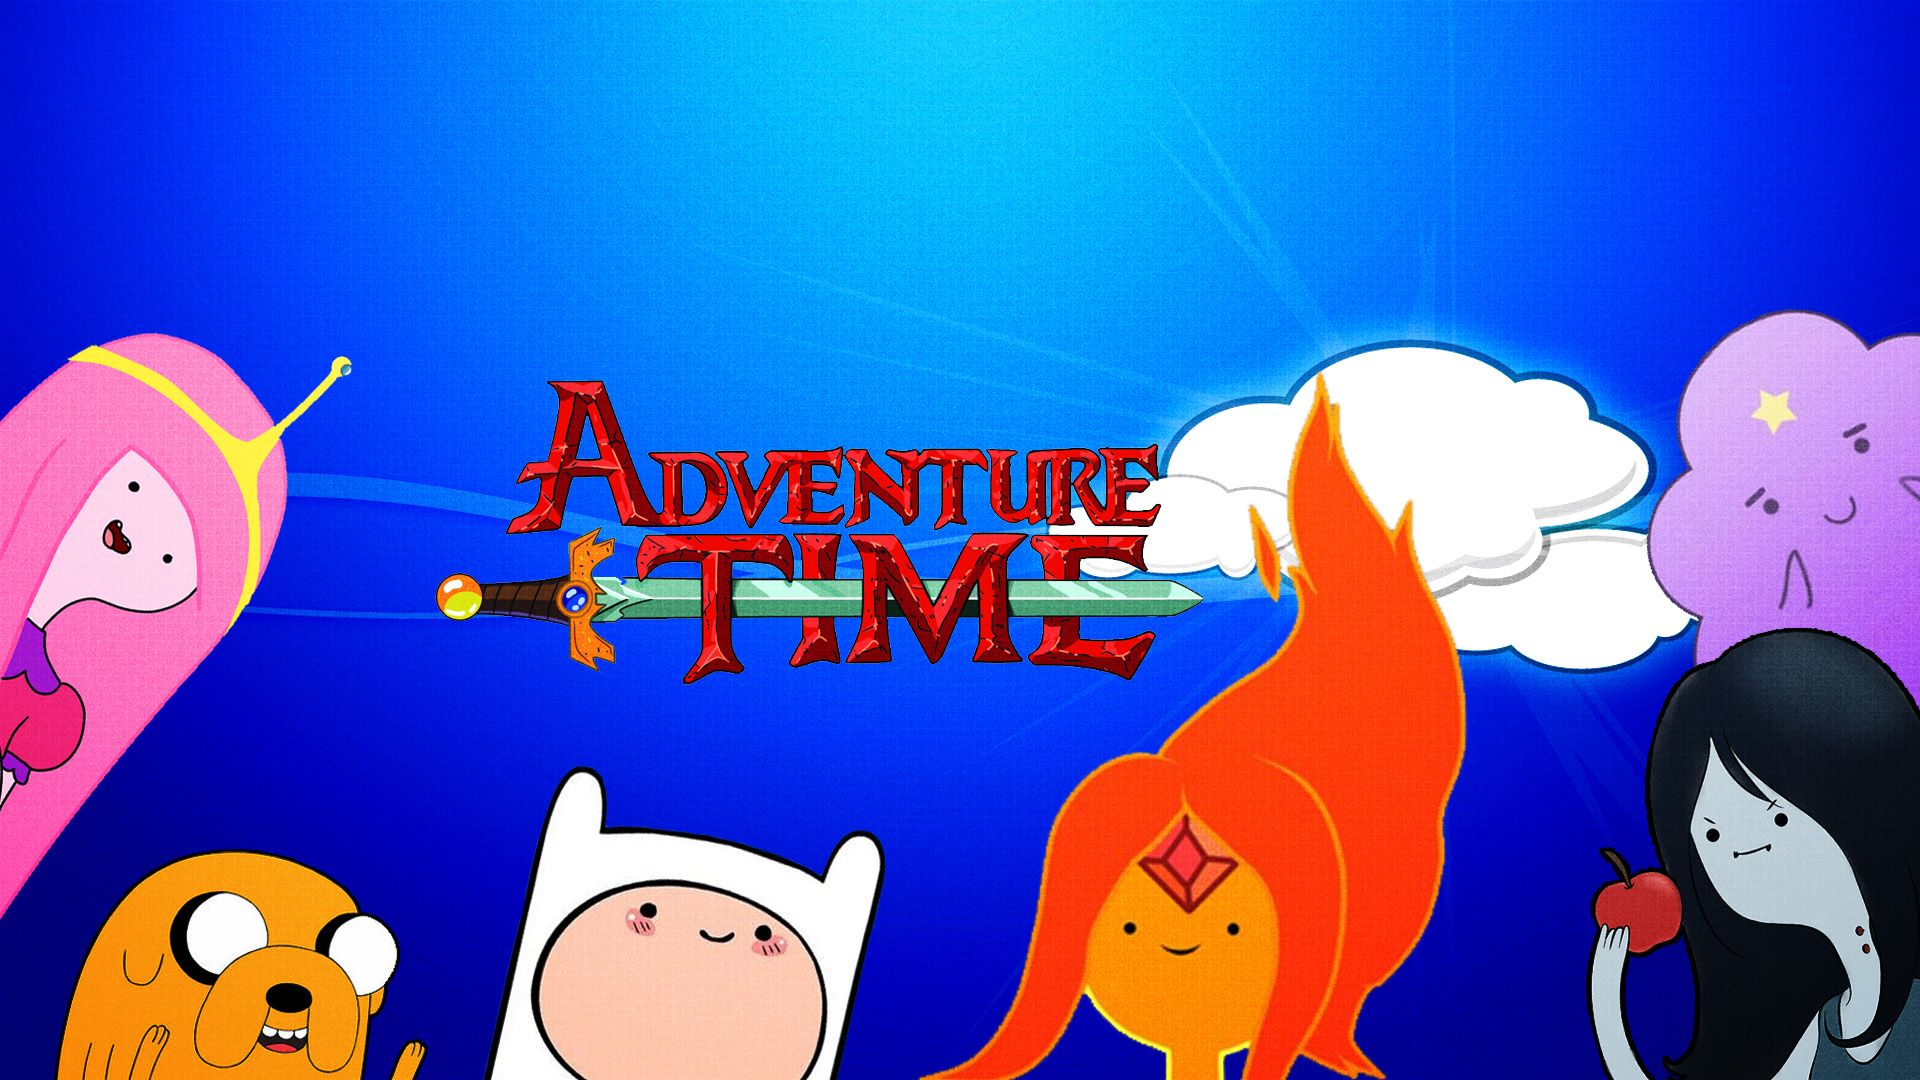 Adventure Time Hd Wallpapers Backgrounds Wallpaper